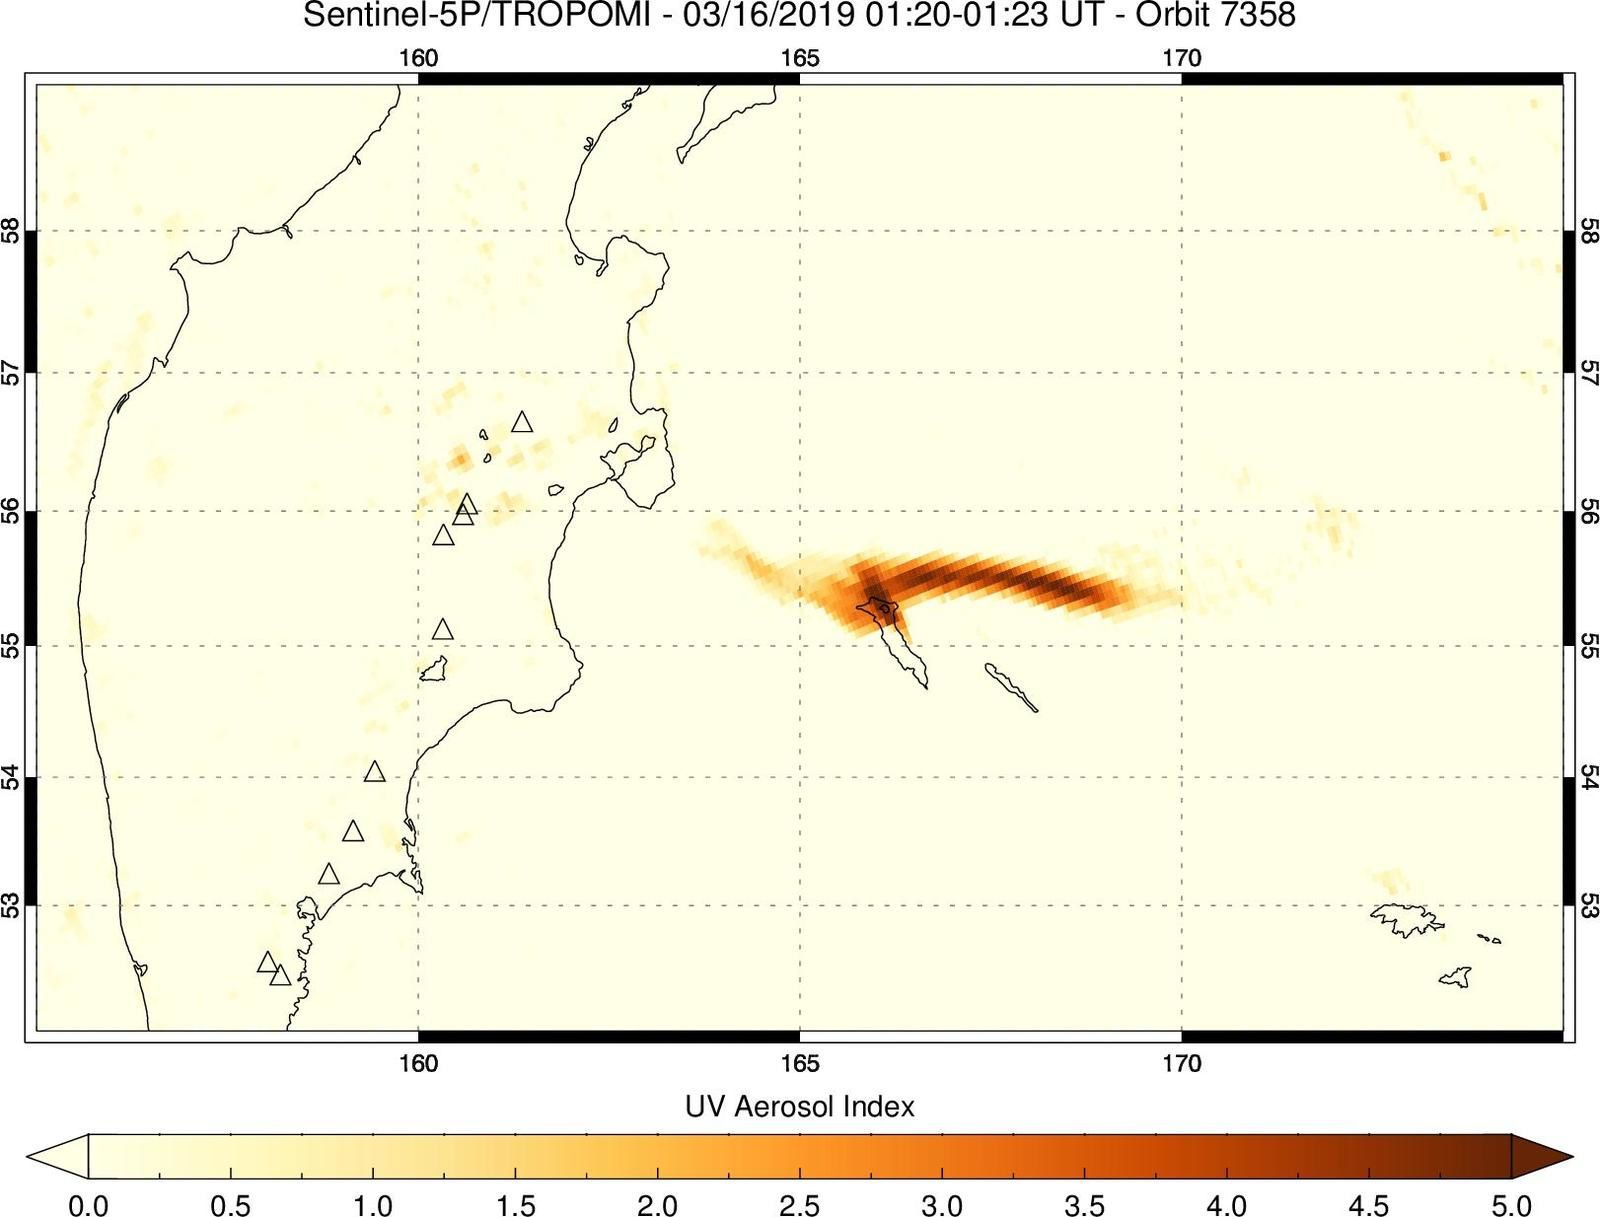 "Ashes and SO2 of the Bezimianny eruption of 15.03.2019, captured by Sentinel 5P / Tropomi SO2 and UV aerosol index on 16.03.2019 / 01h20 - ""A good case of ash-gas separation in a volcanic cloud"". - Doc. transmitted by Simon Carn"